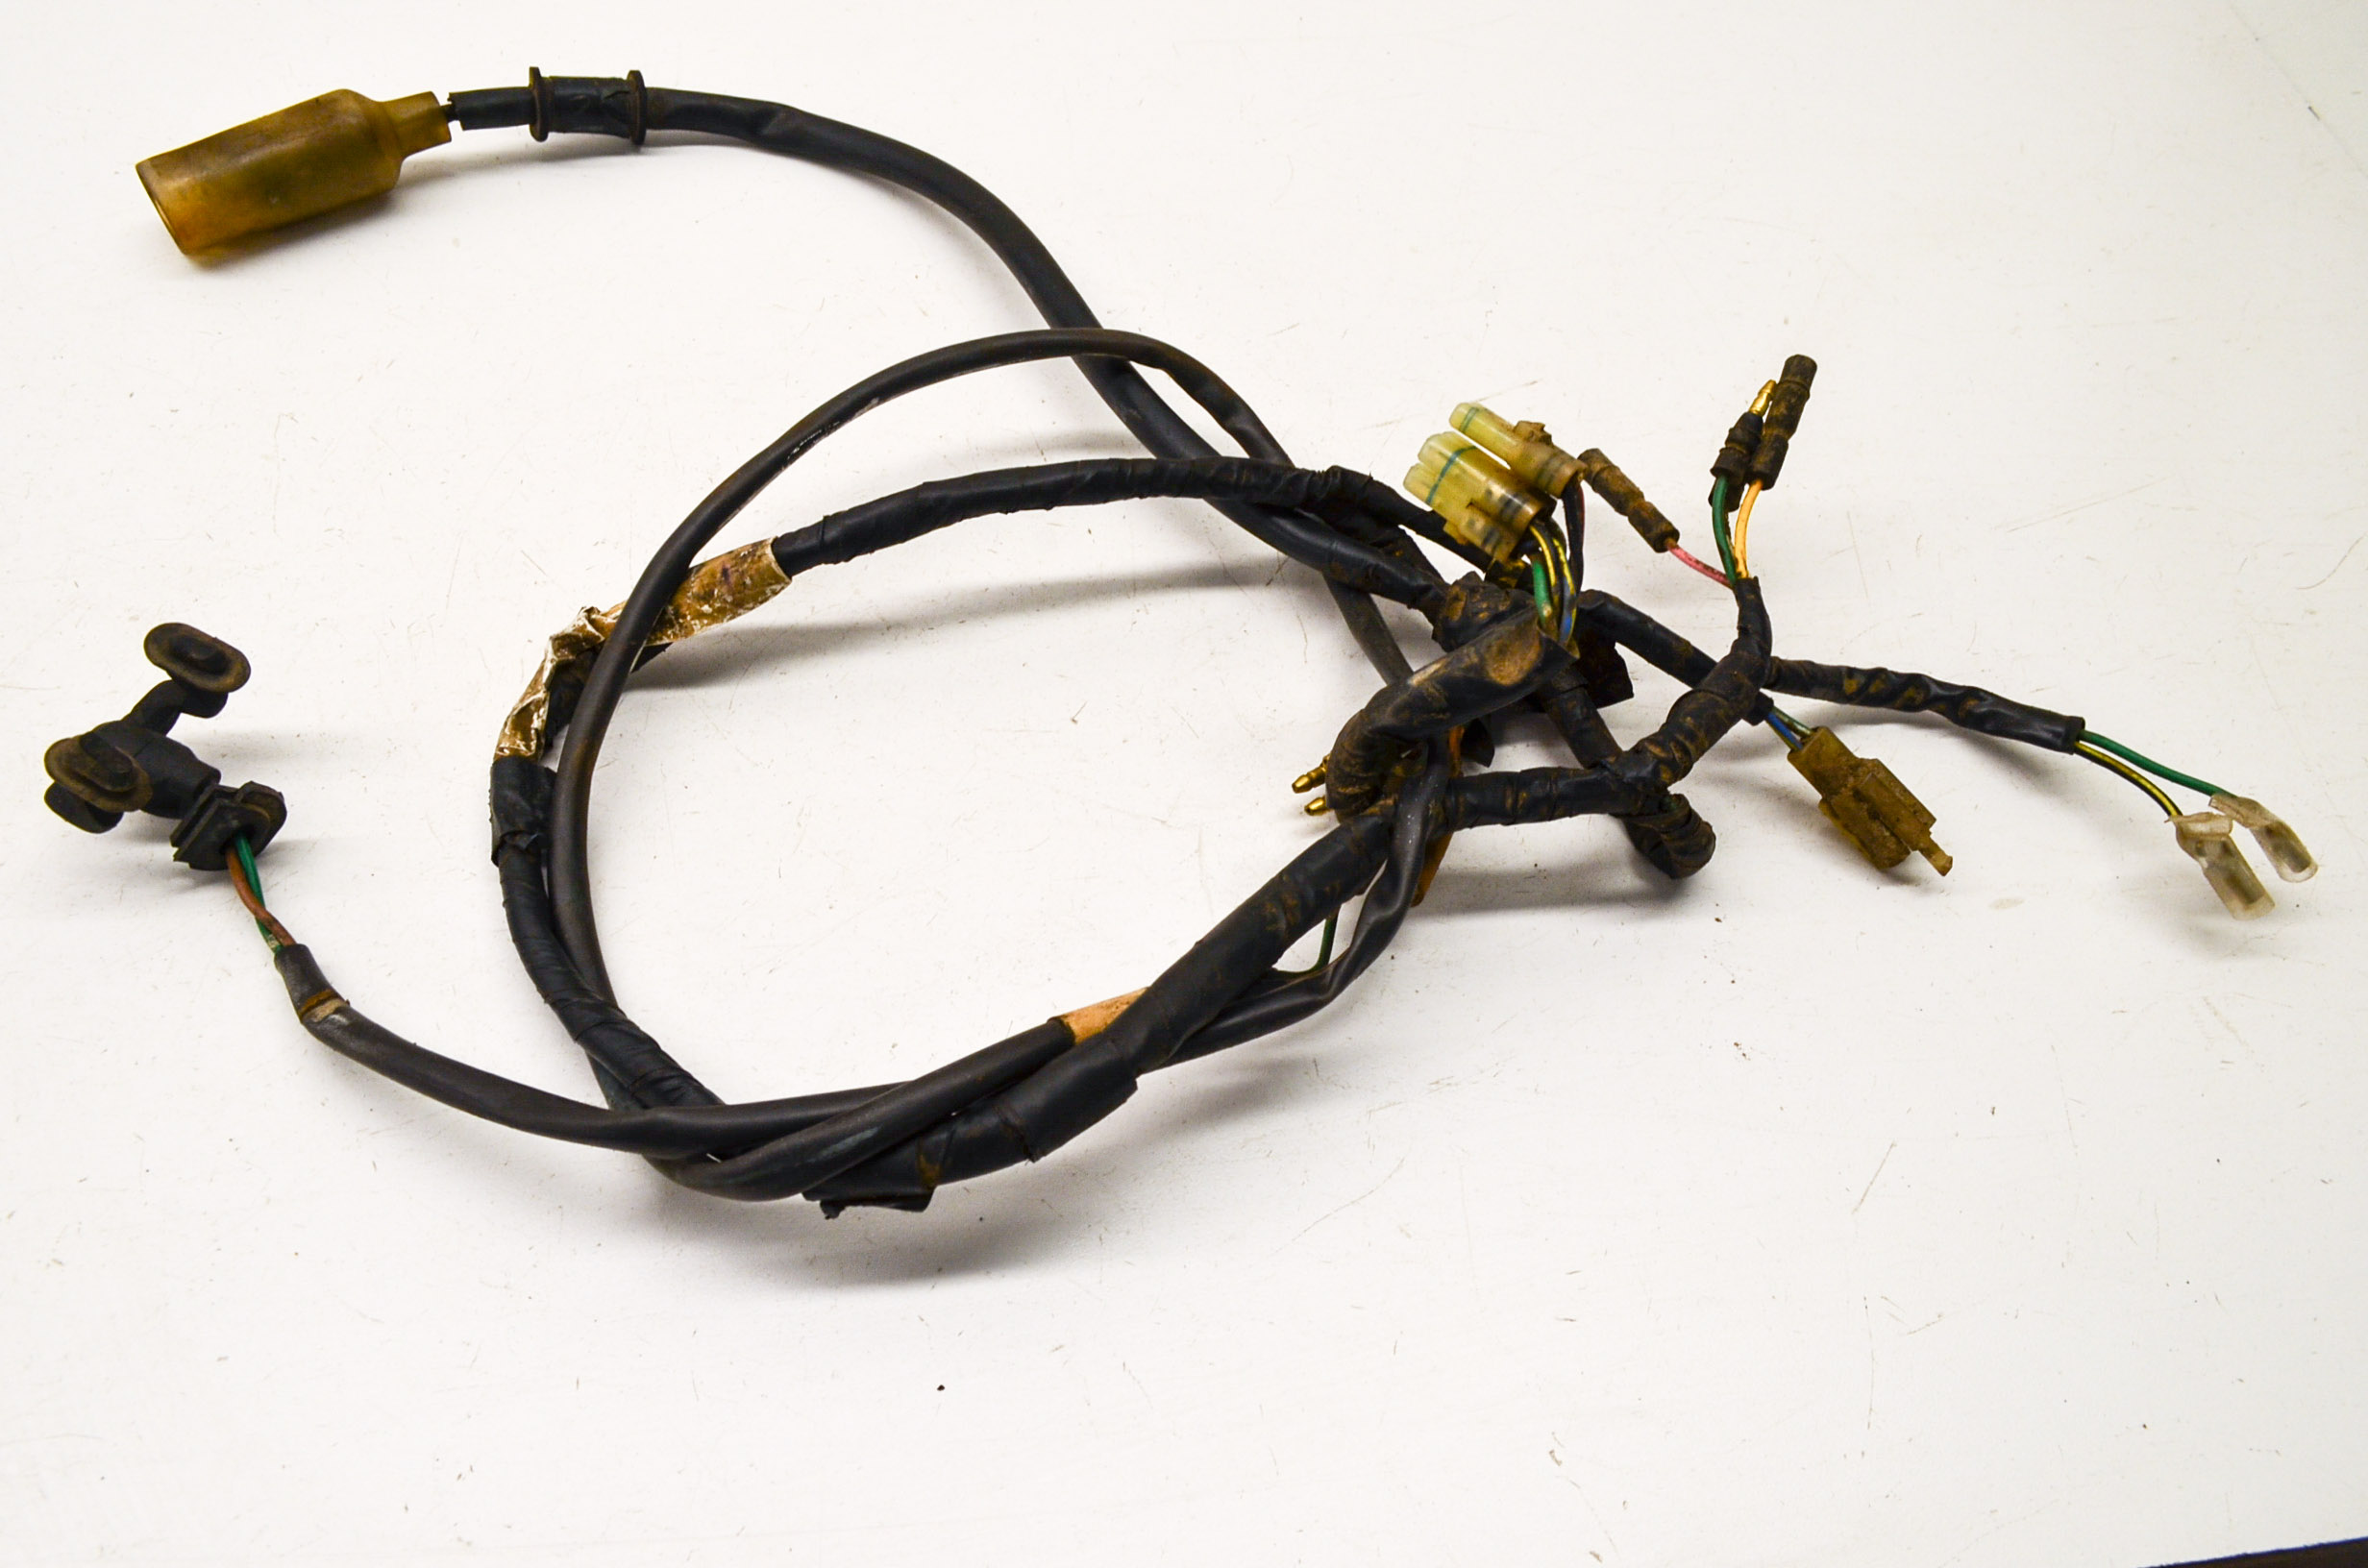 Honda34 1 86 honda xr250r wire harness electrical wiring ebay wiring harness rhode island at reclaimingppi.co